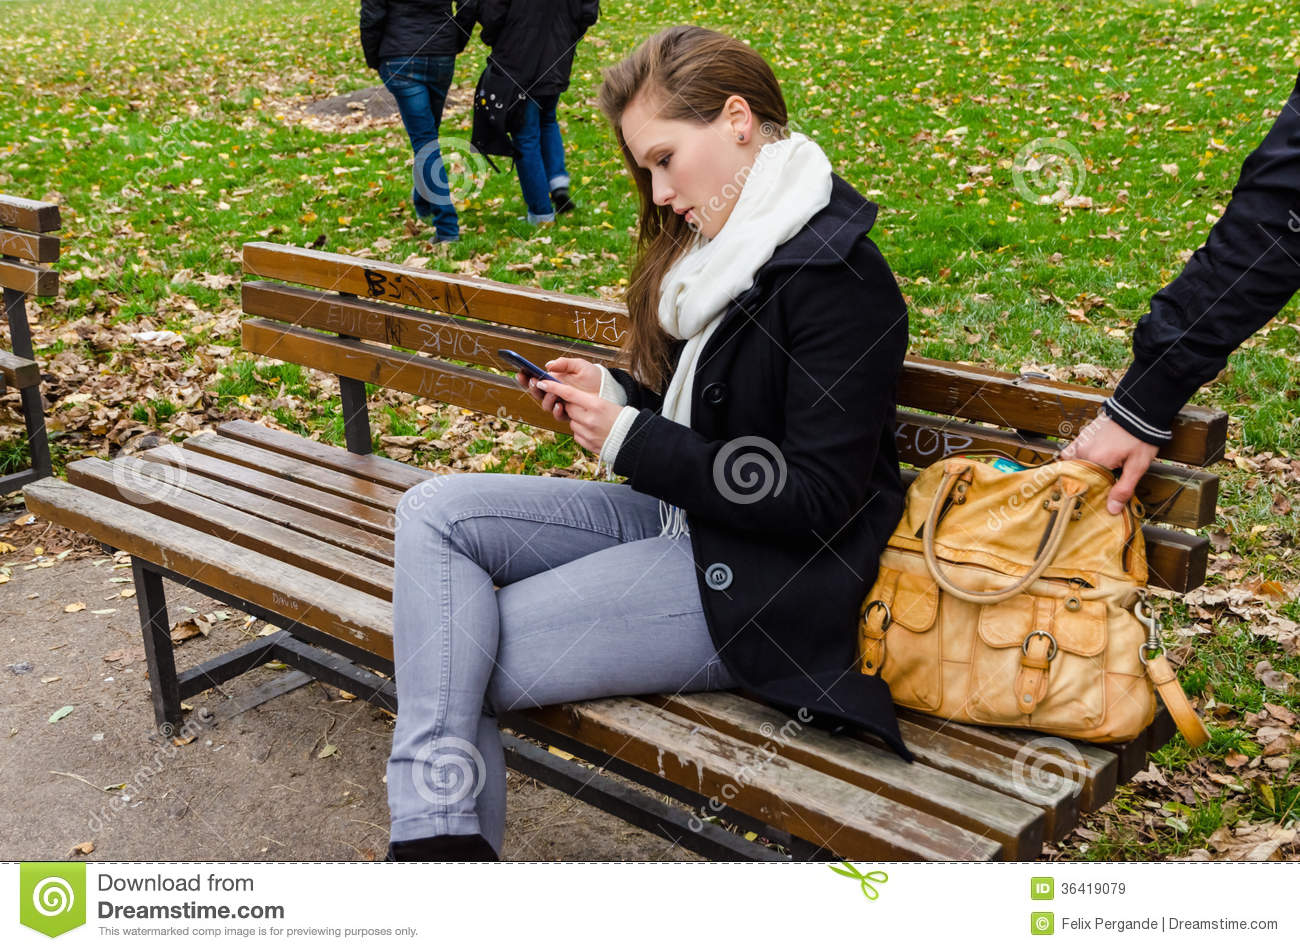 ... Using Phone On Park Bench Royalty Free Stock Images - Image: 36419079